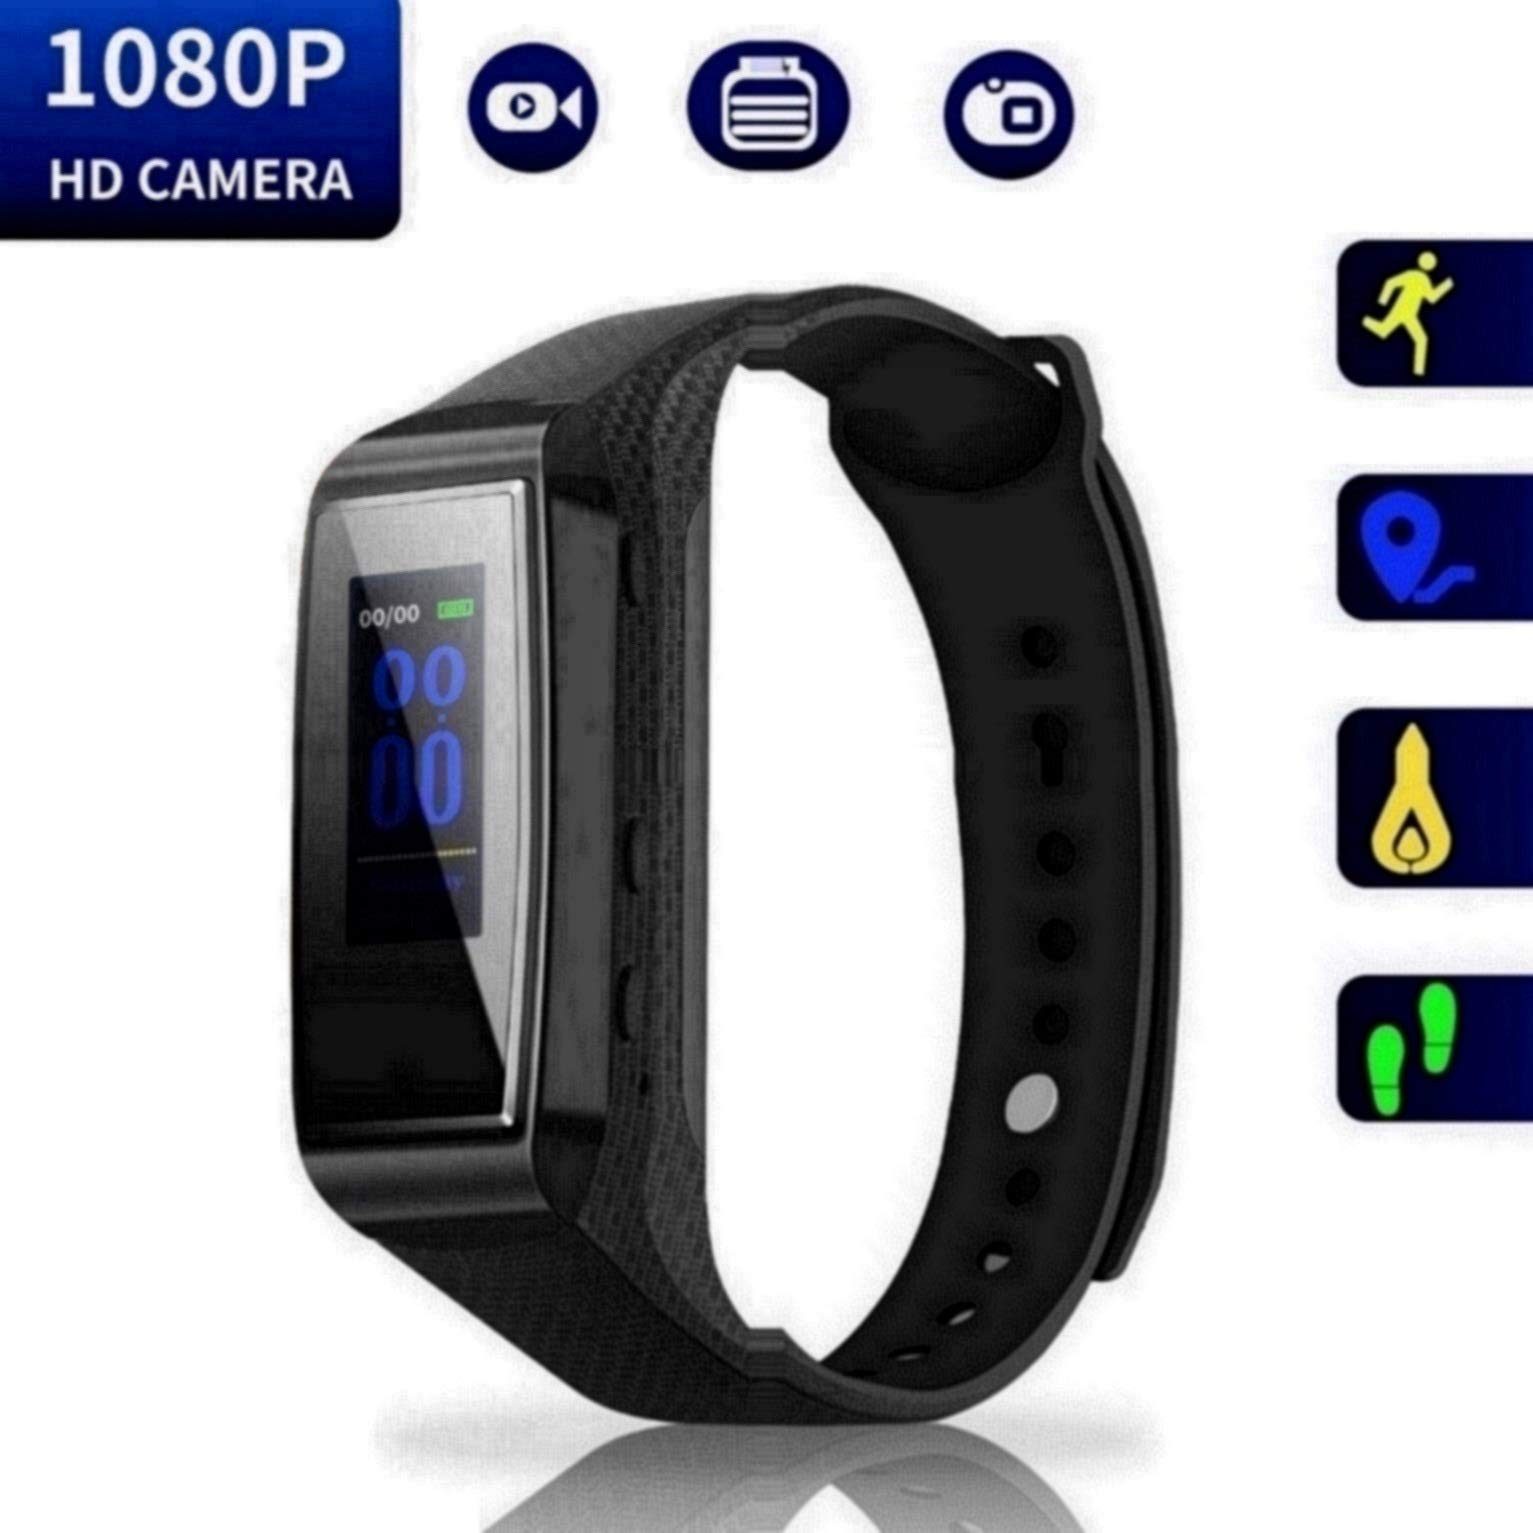 Hidden Camera Bracelet HD Mini Camcorder - Larger Display Version Spy Camera 1080p Wirst Band Sports Spycam LKcare Lens-Shielded Surveillance DVR with Tracker Function by LKcare